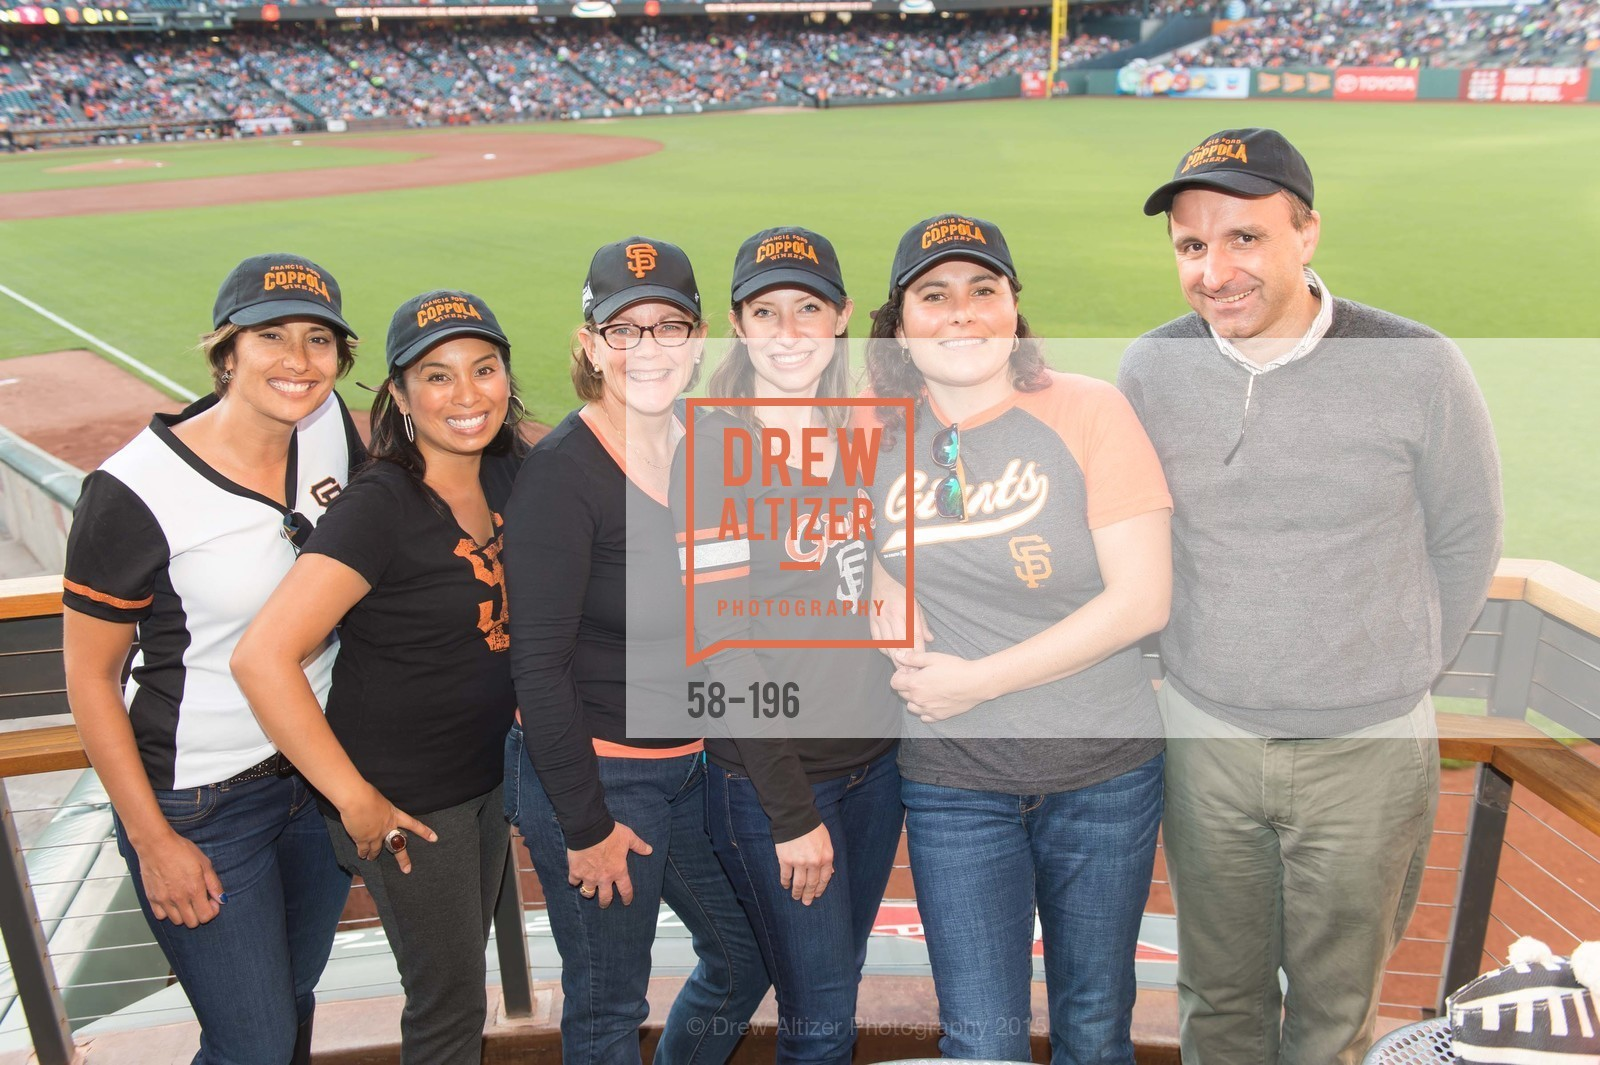 Lise Asimont, Tondi Bolten, Meghan Rech, Natalie Dale, Francois Tordesse, Francis Ford Coppola Winery Presents Diamond on the Diamond, San Francisco Giants AT&T Park, Virgin America Loft. 24 Willie Mays Plaza, July 10th, 2015,Drew Altizer, Drew Altizer Photography, full-service agency, private events, San Francisco photographer, photographer california